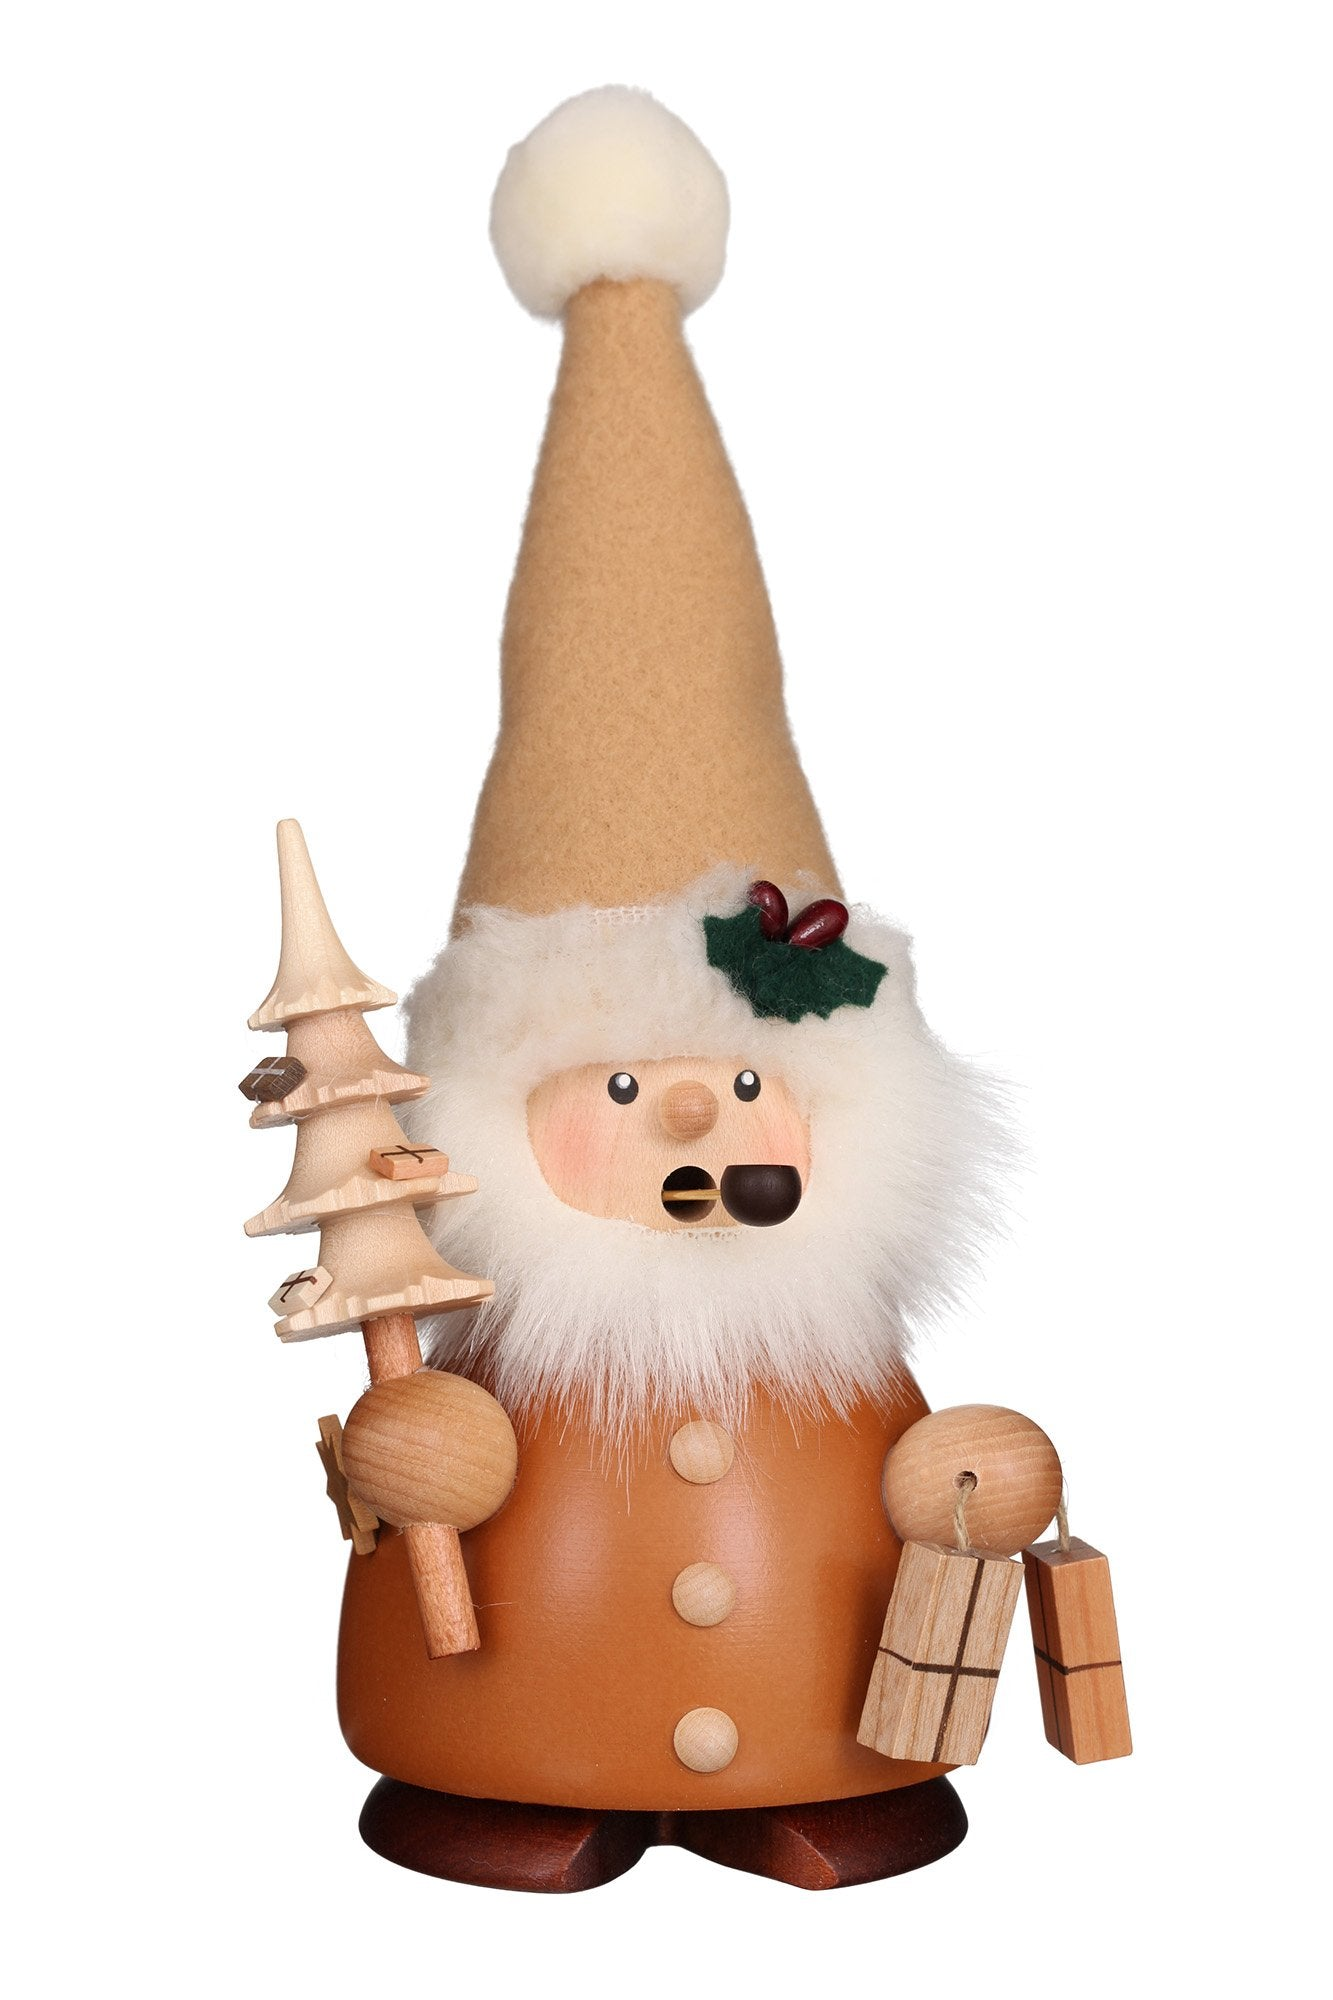 Incense Burner - Small - Santa with Pointy Hat